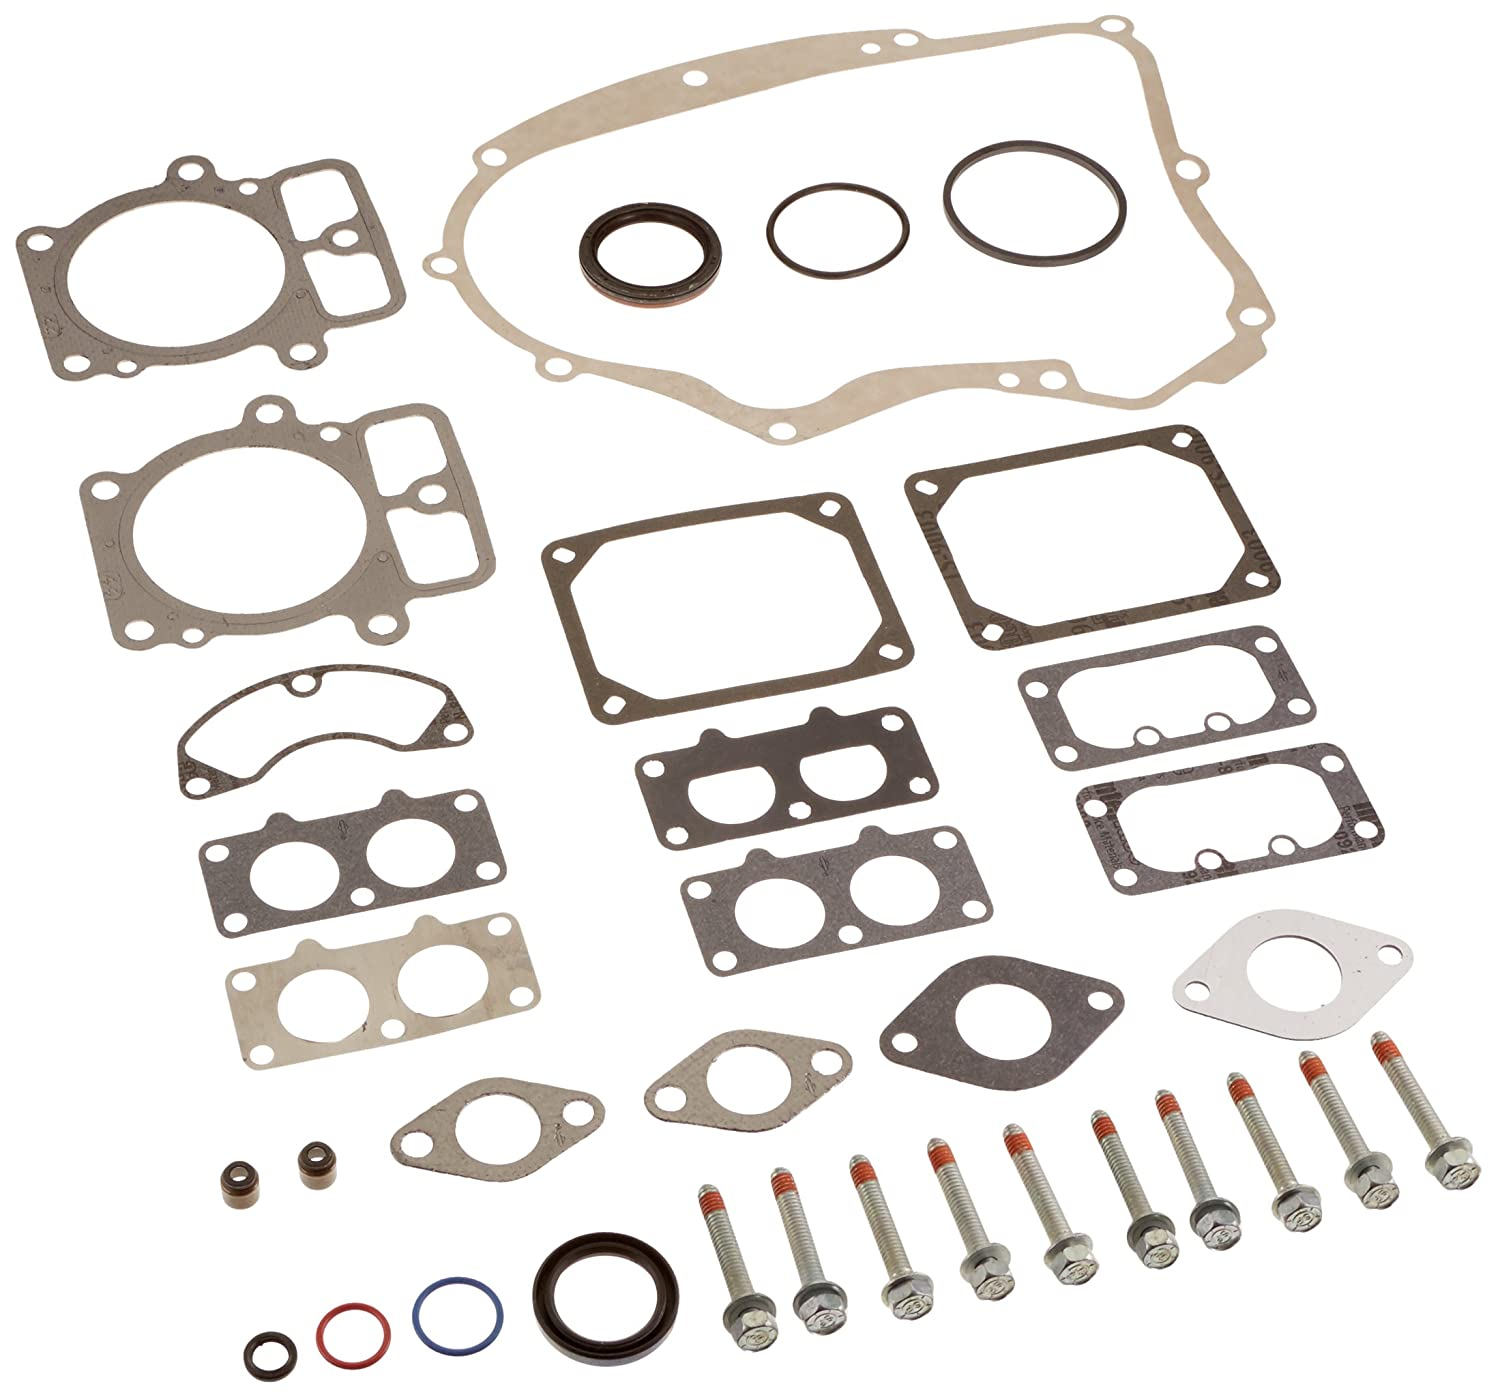 Briggs & Stratton 694012 Engine Gasket Set Replacement for Model 499889